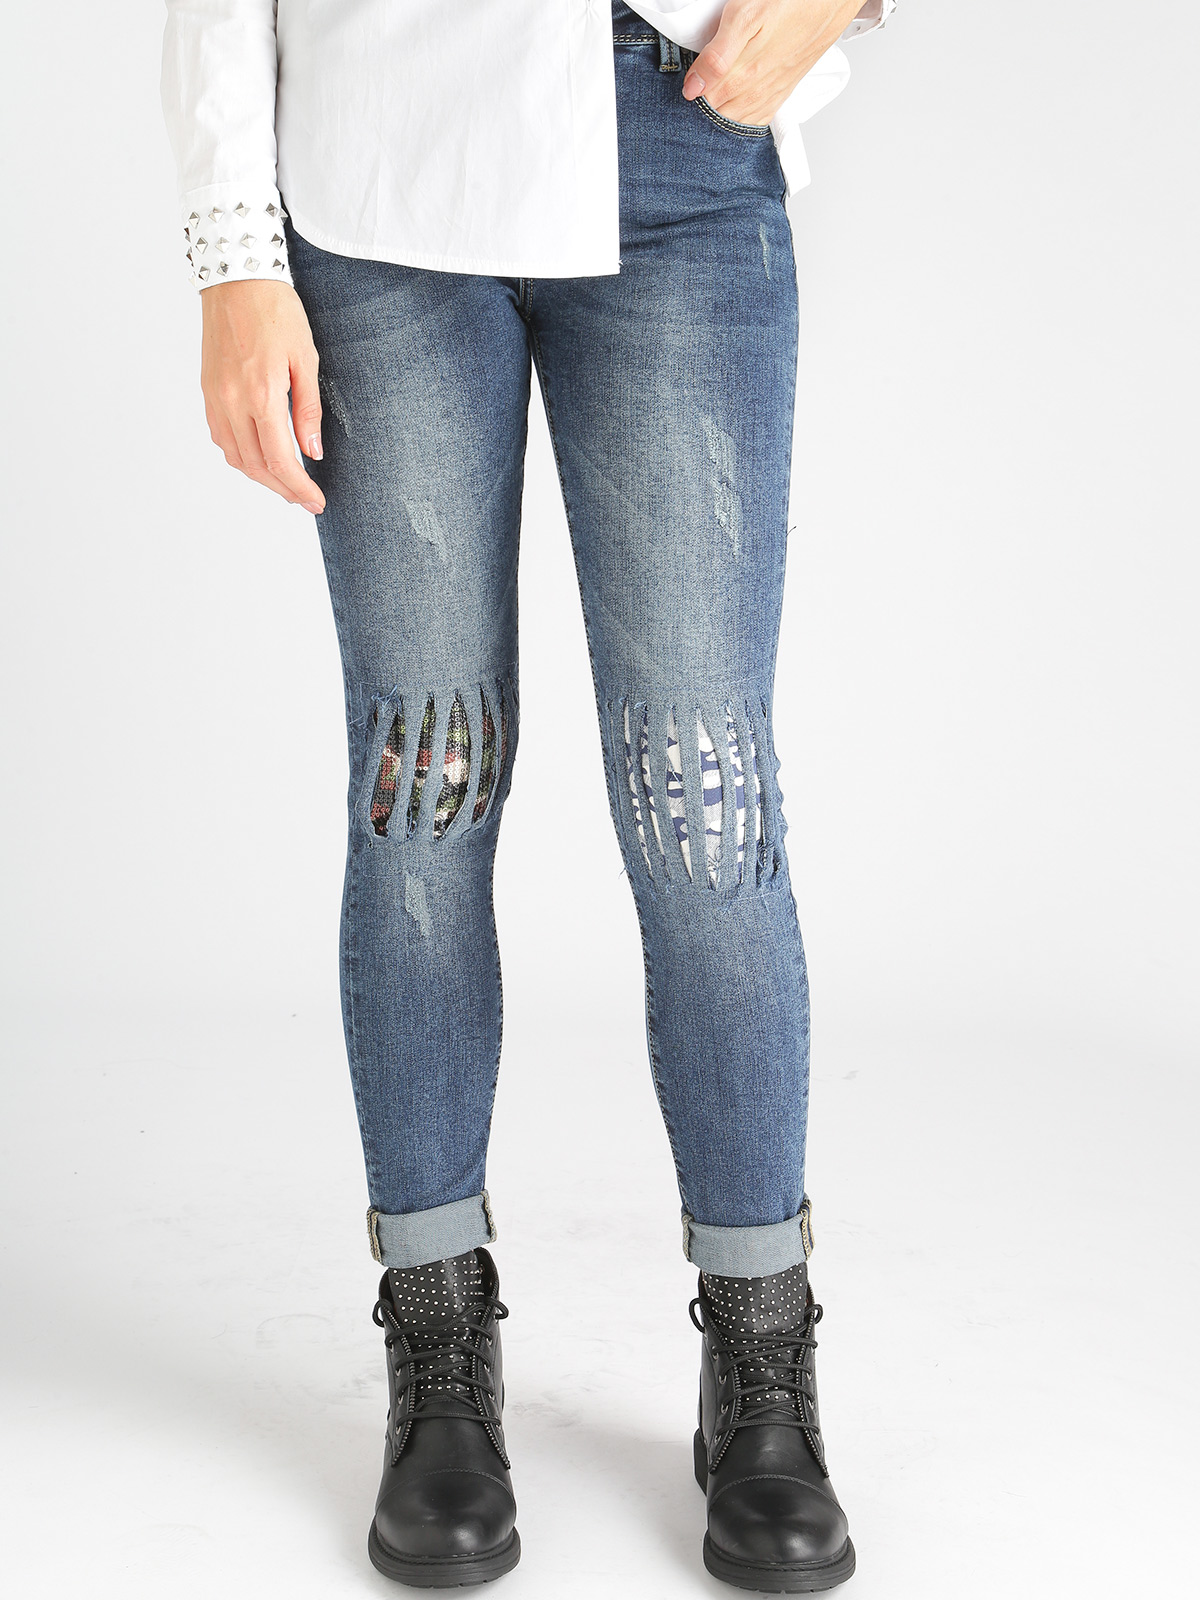 Jeans With Sequins Slim Fit